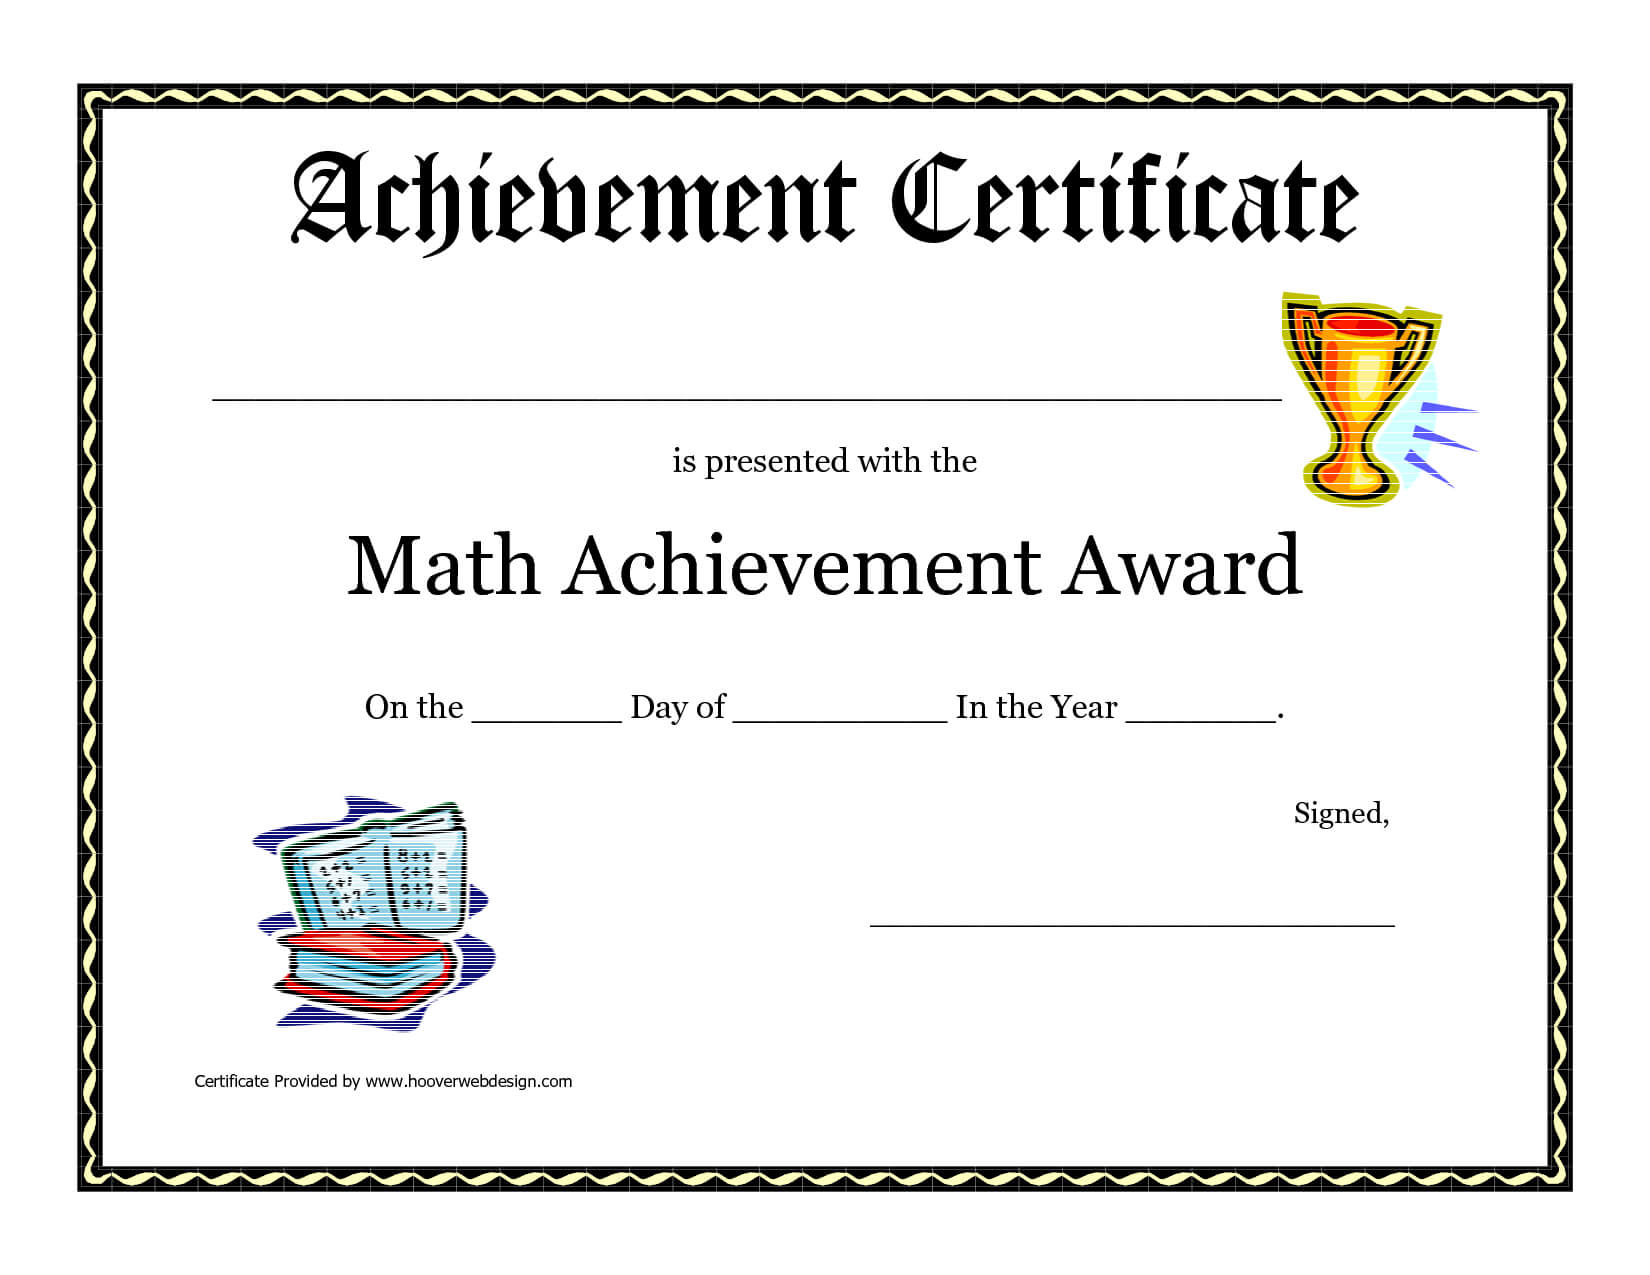 Math Achievement Award Printable Certificate Pdf | Printable Regarding Math Certificate Template